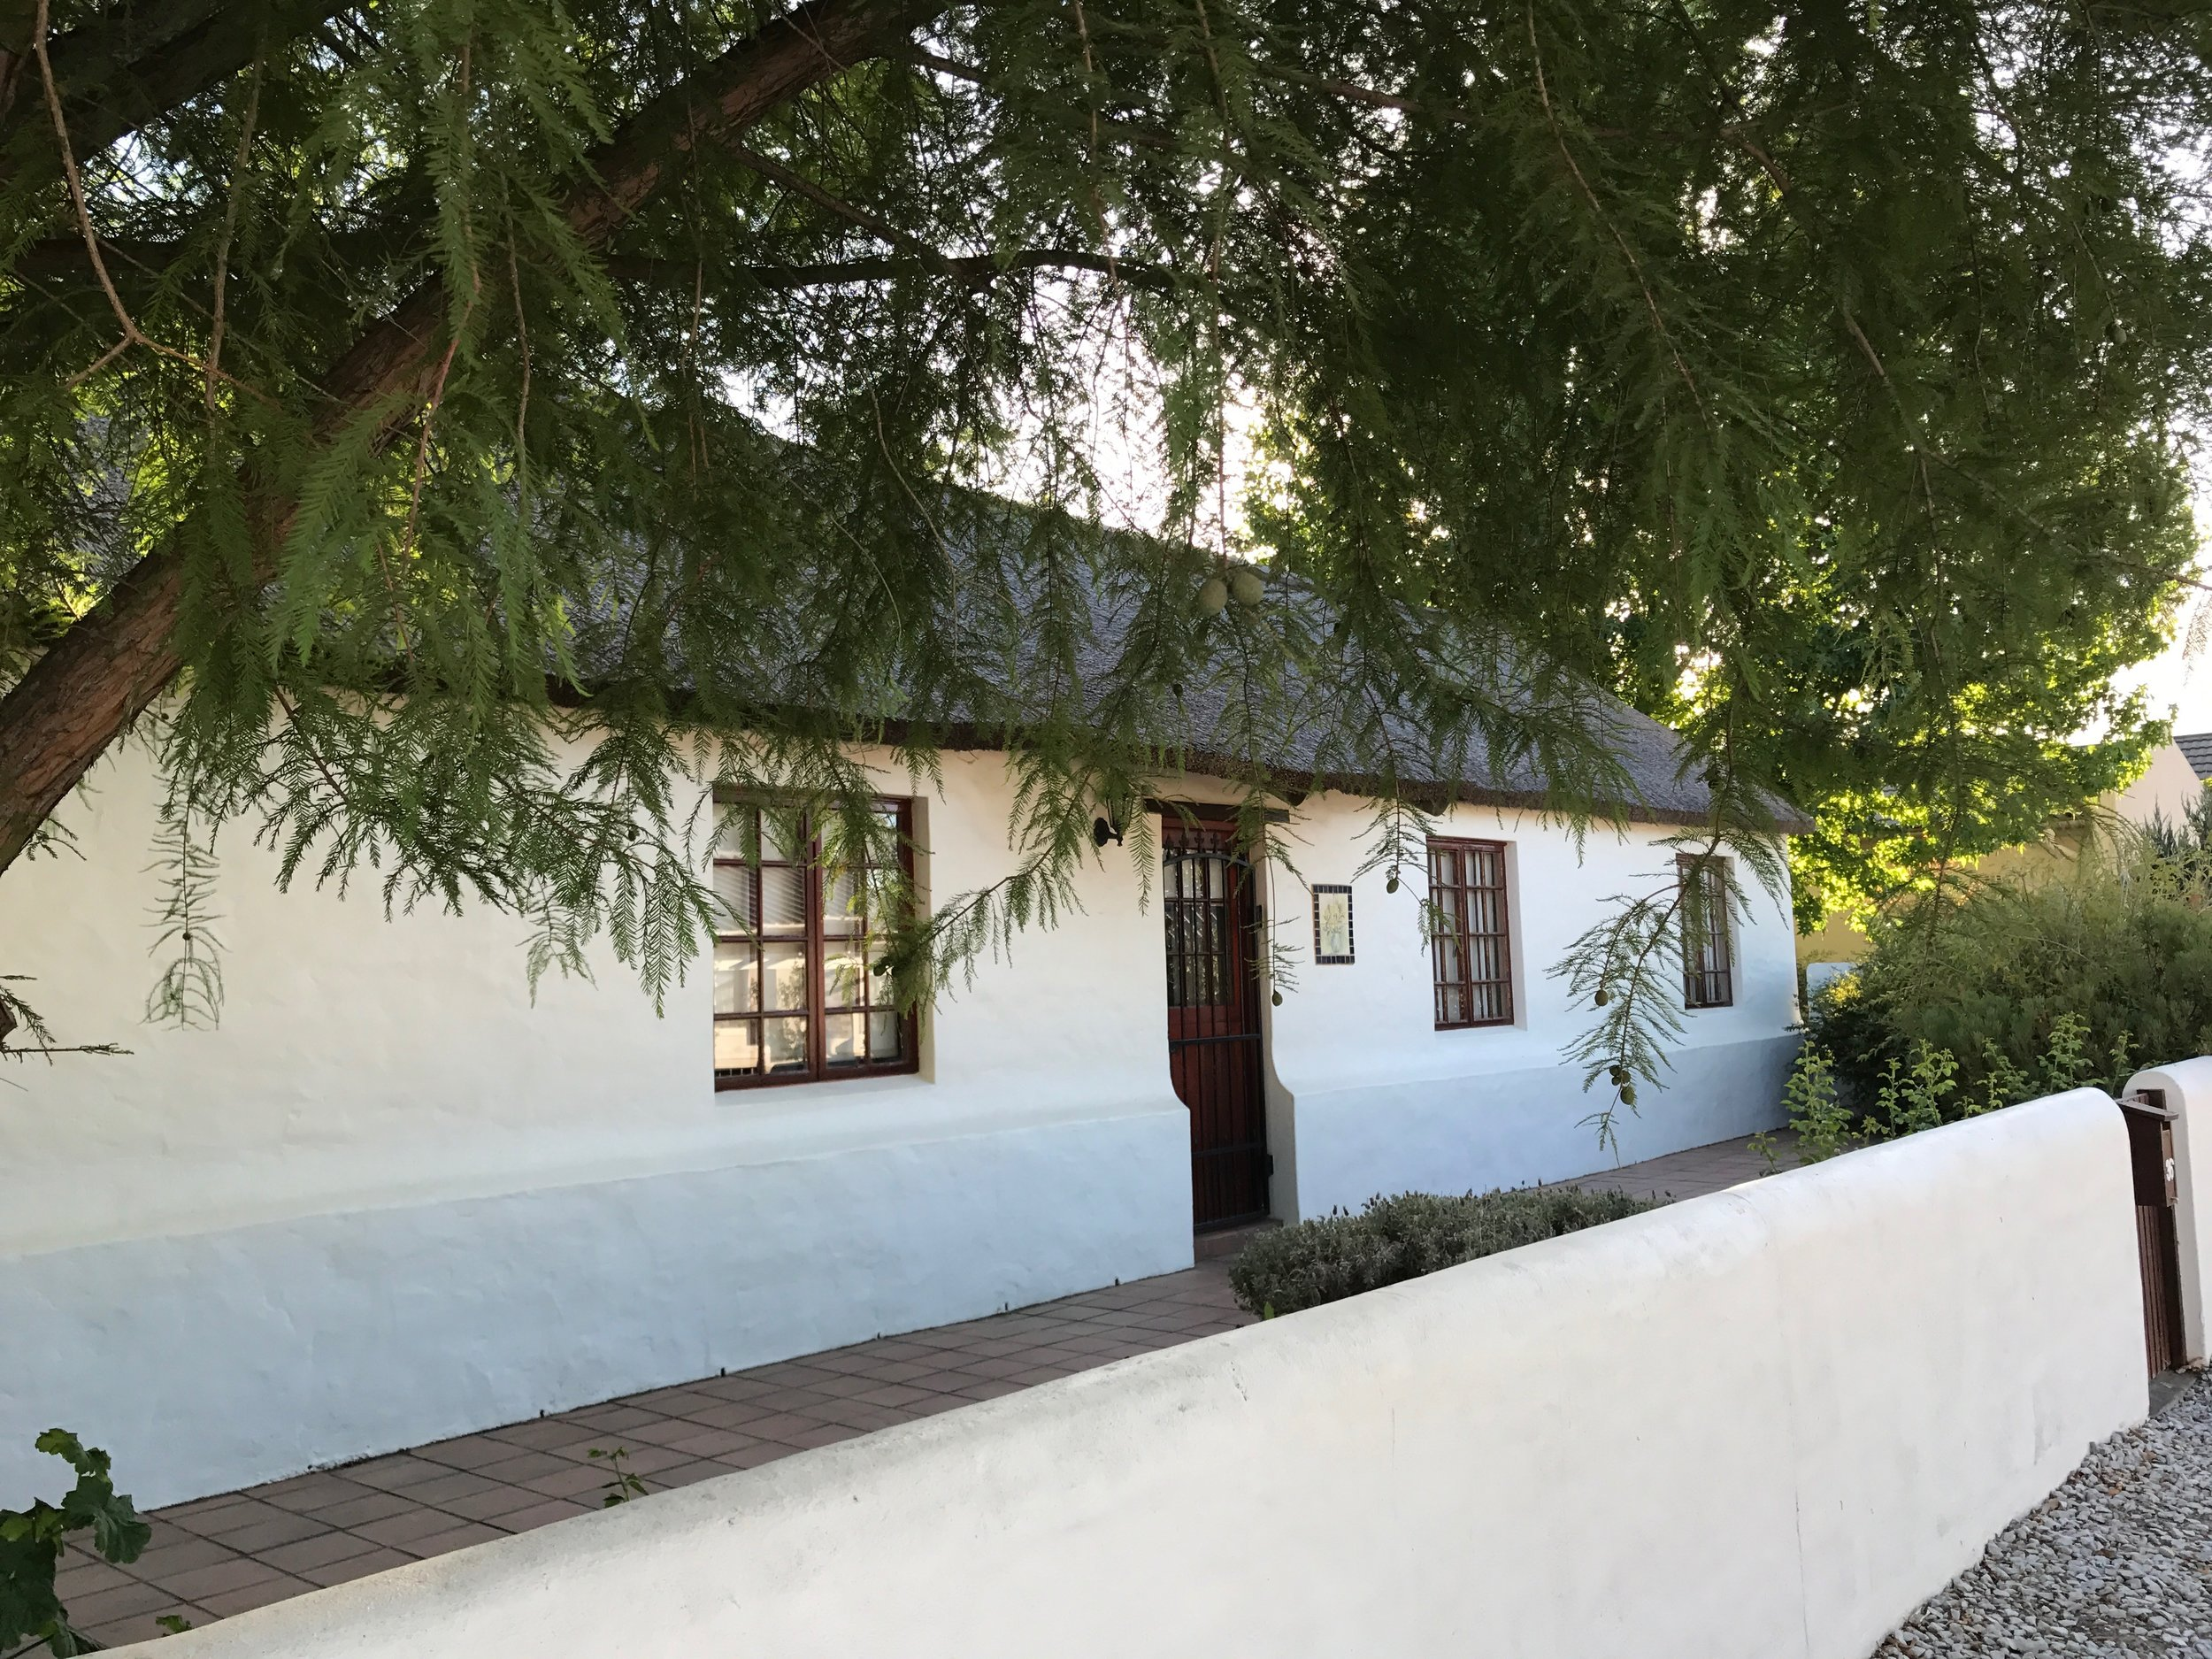 A classic house on one of the tree-lined streets of Villiersdorp